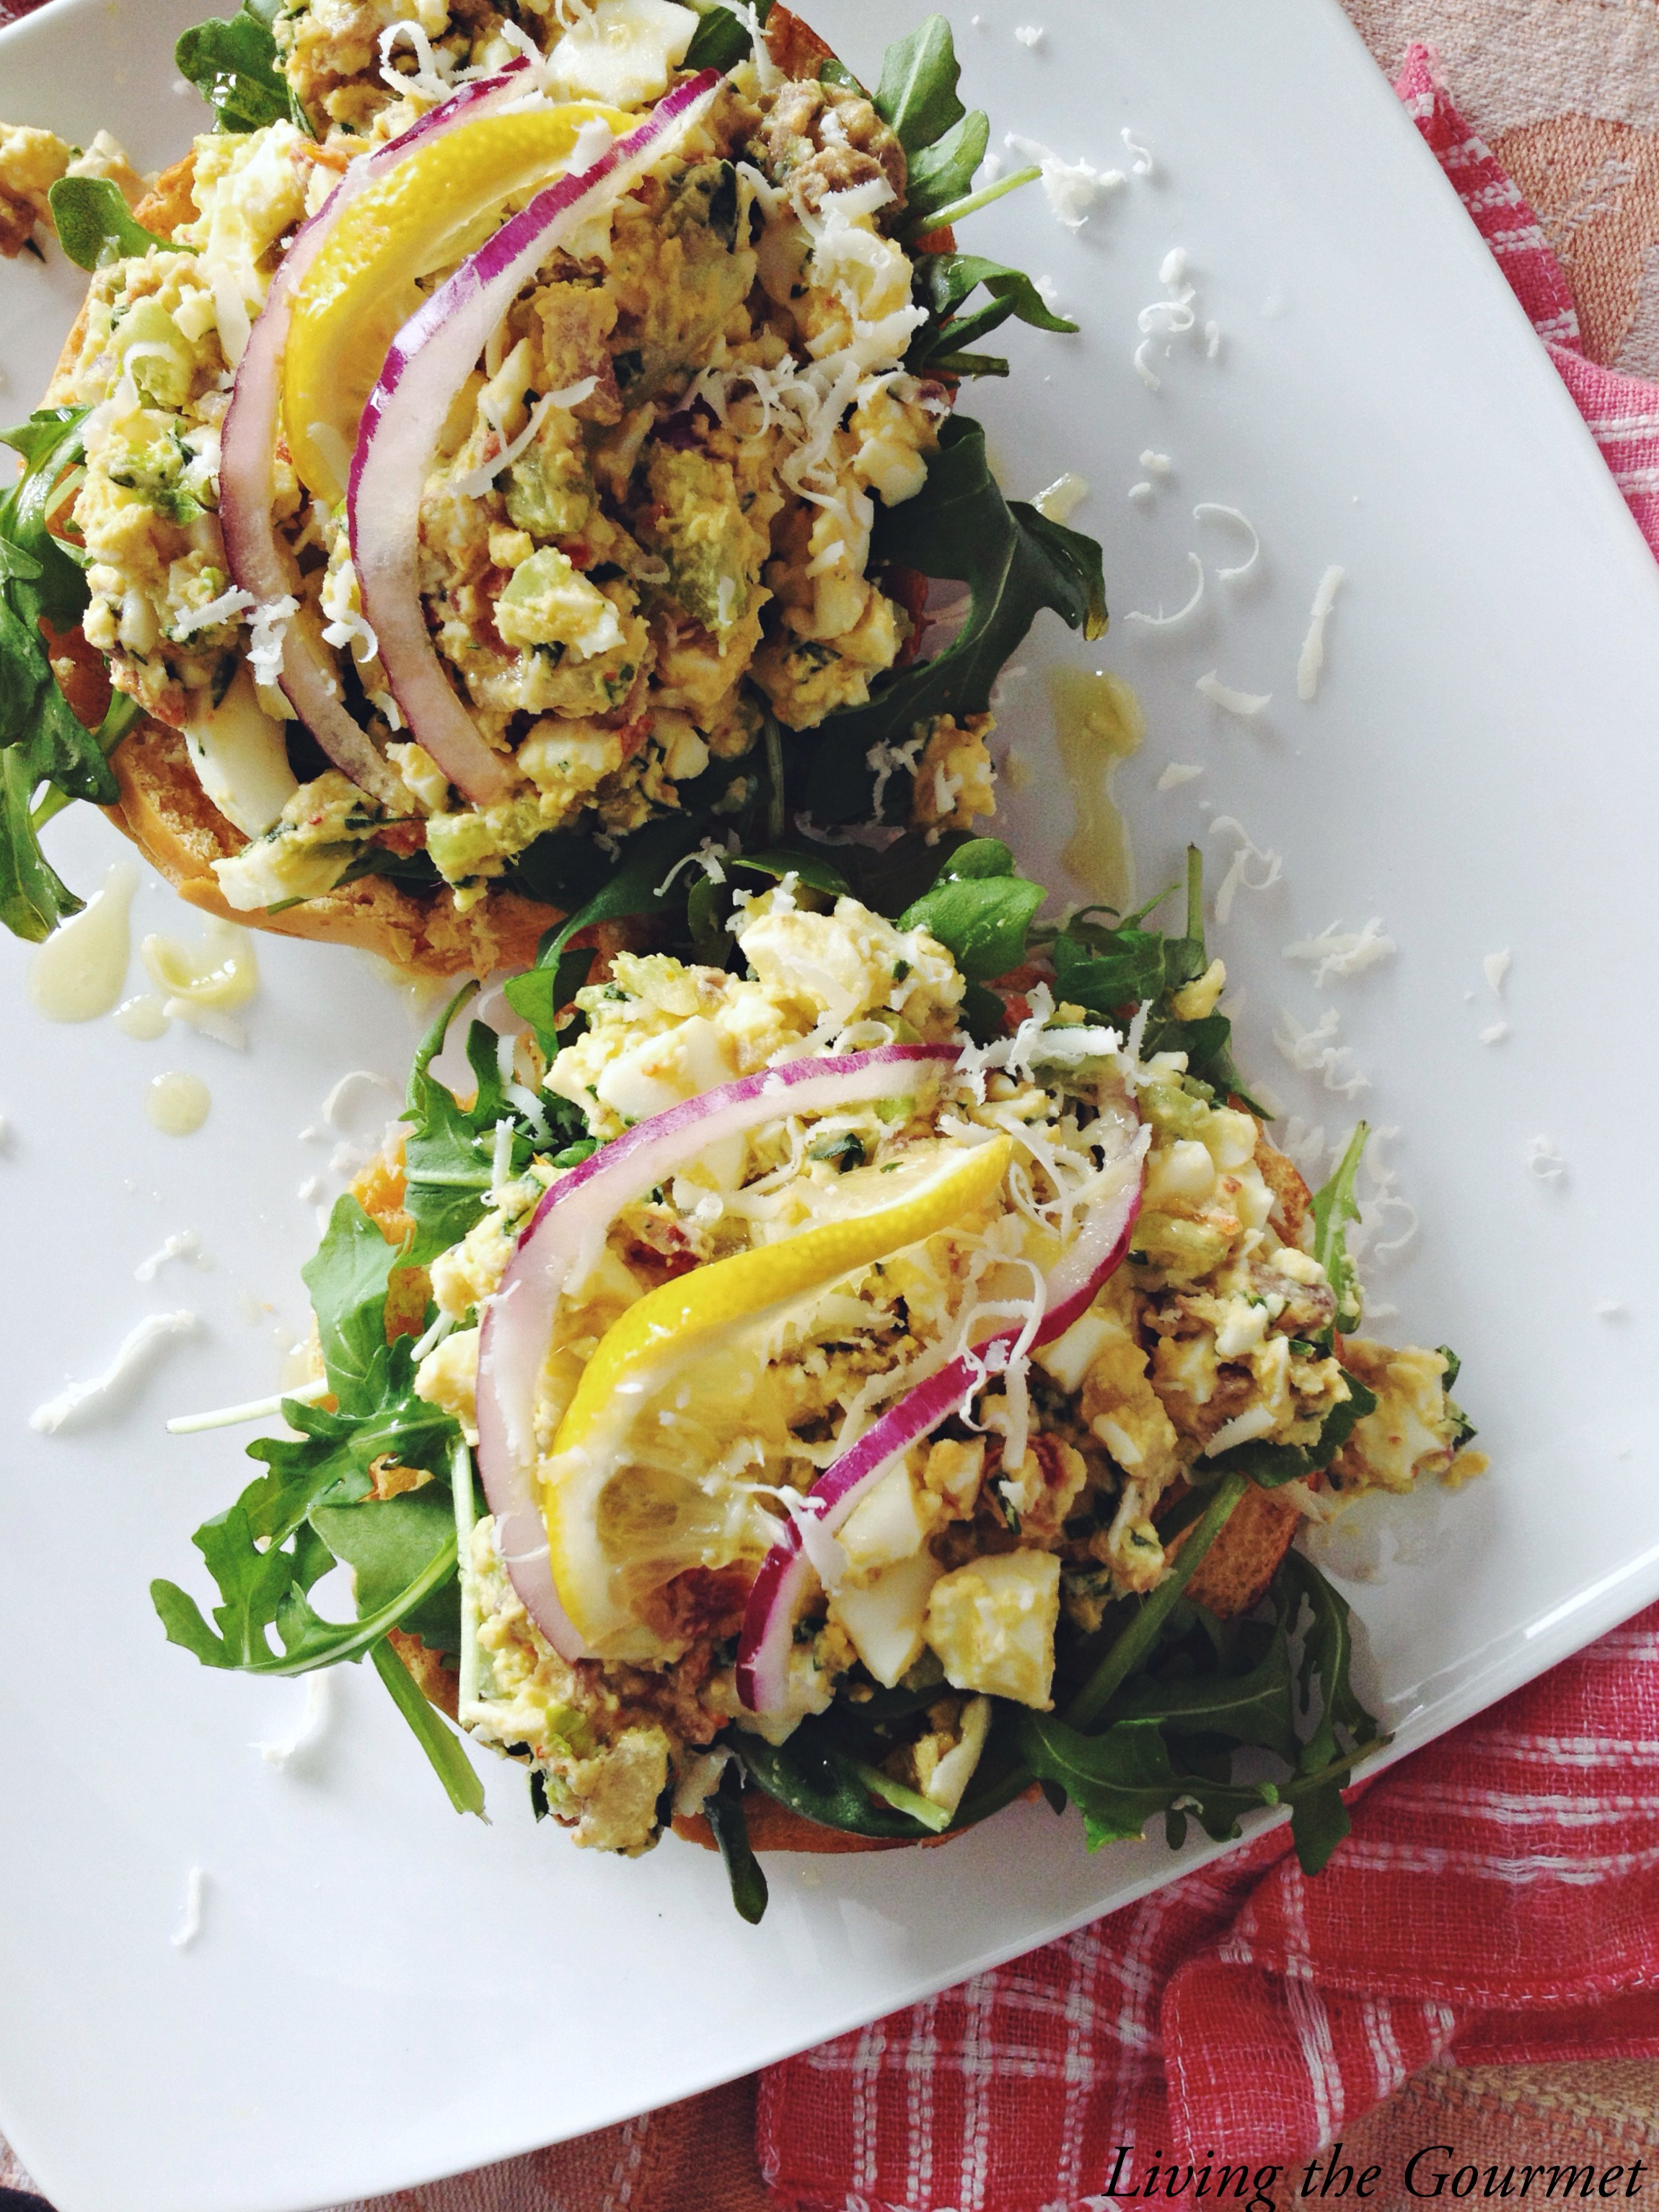 Living the Gourmet: Mediterranean Style Egg Salad